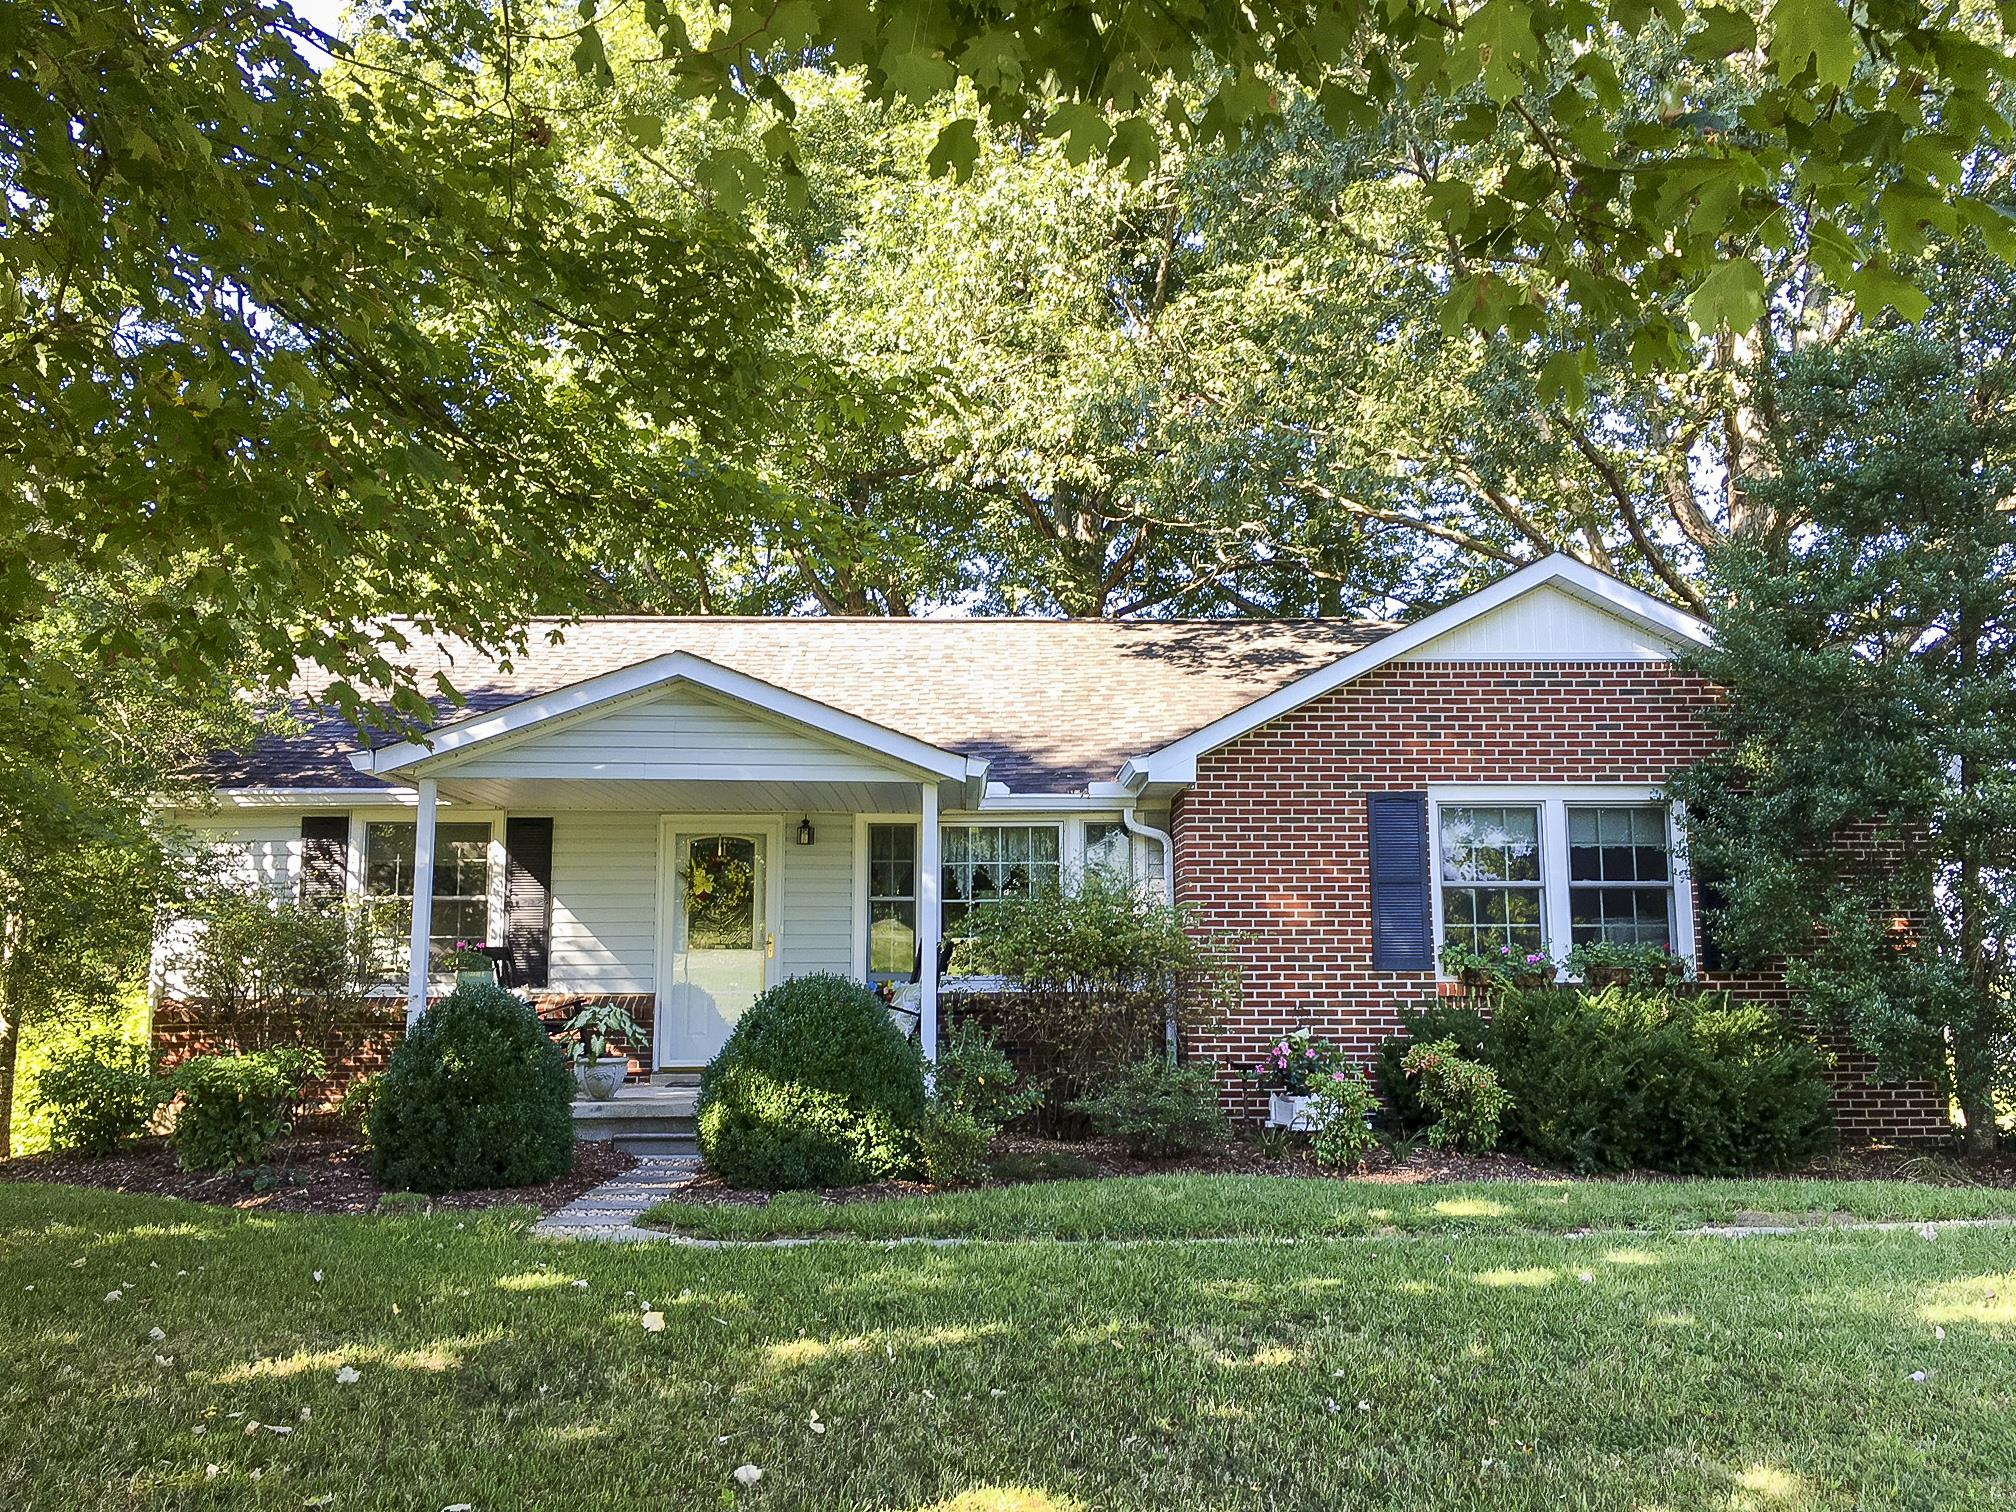 7119 Old Franklin Rd, Fairview in Williamson County County, TN 37062 Home for Sale